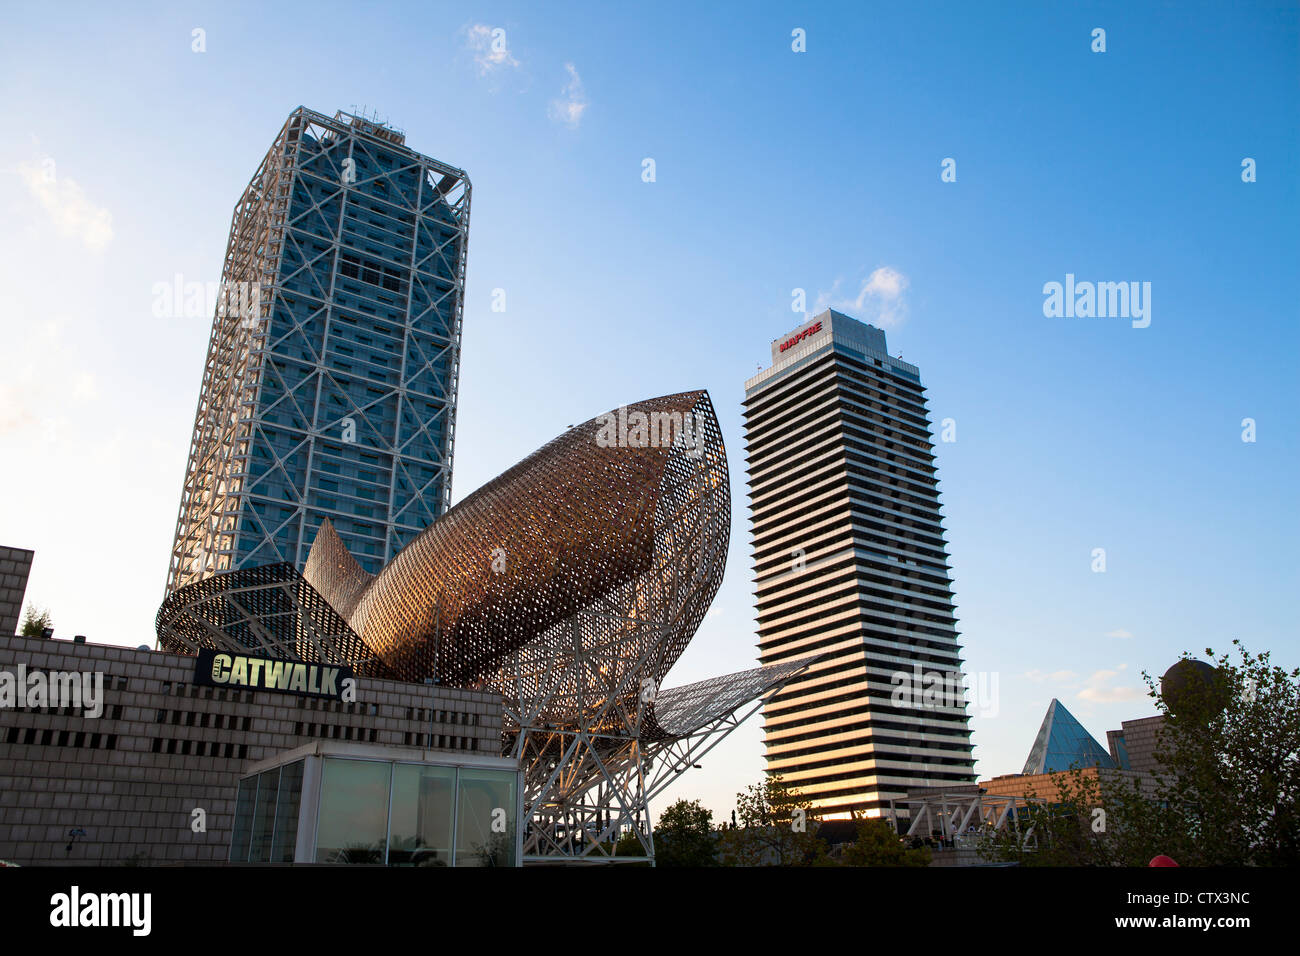 Modern Architecture In Barcelona modern architecture barcelona spain stock photo, royalty free